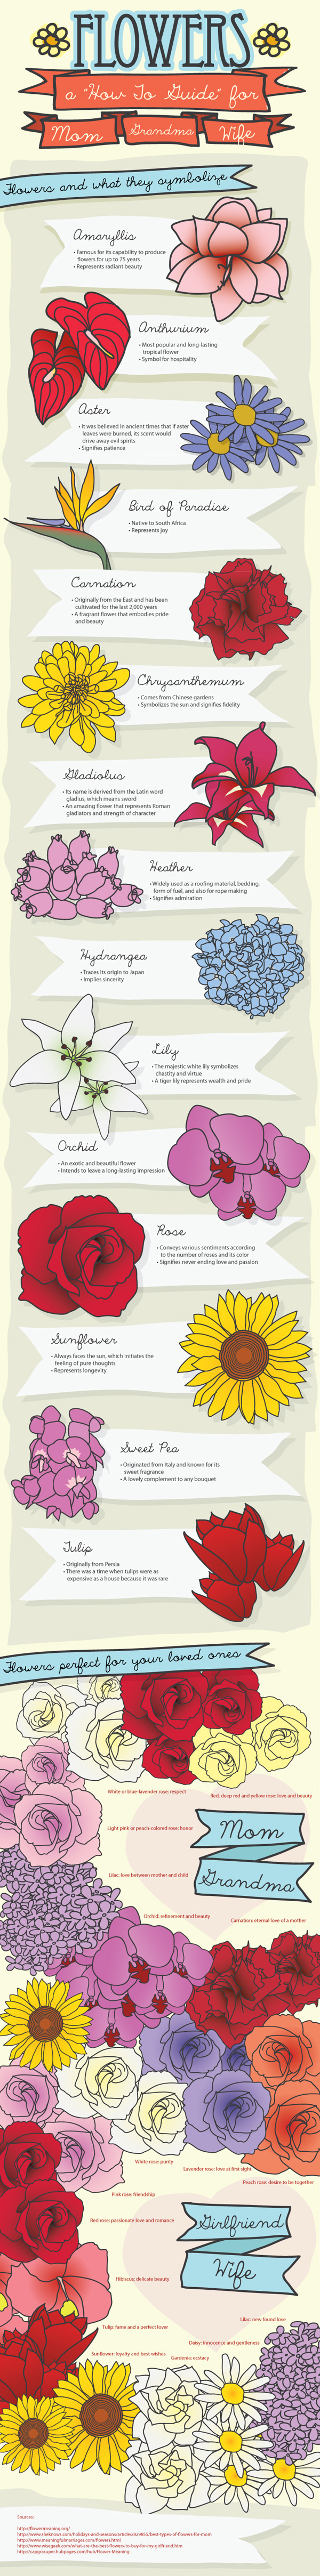 what do flowers convey